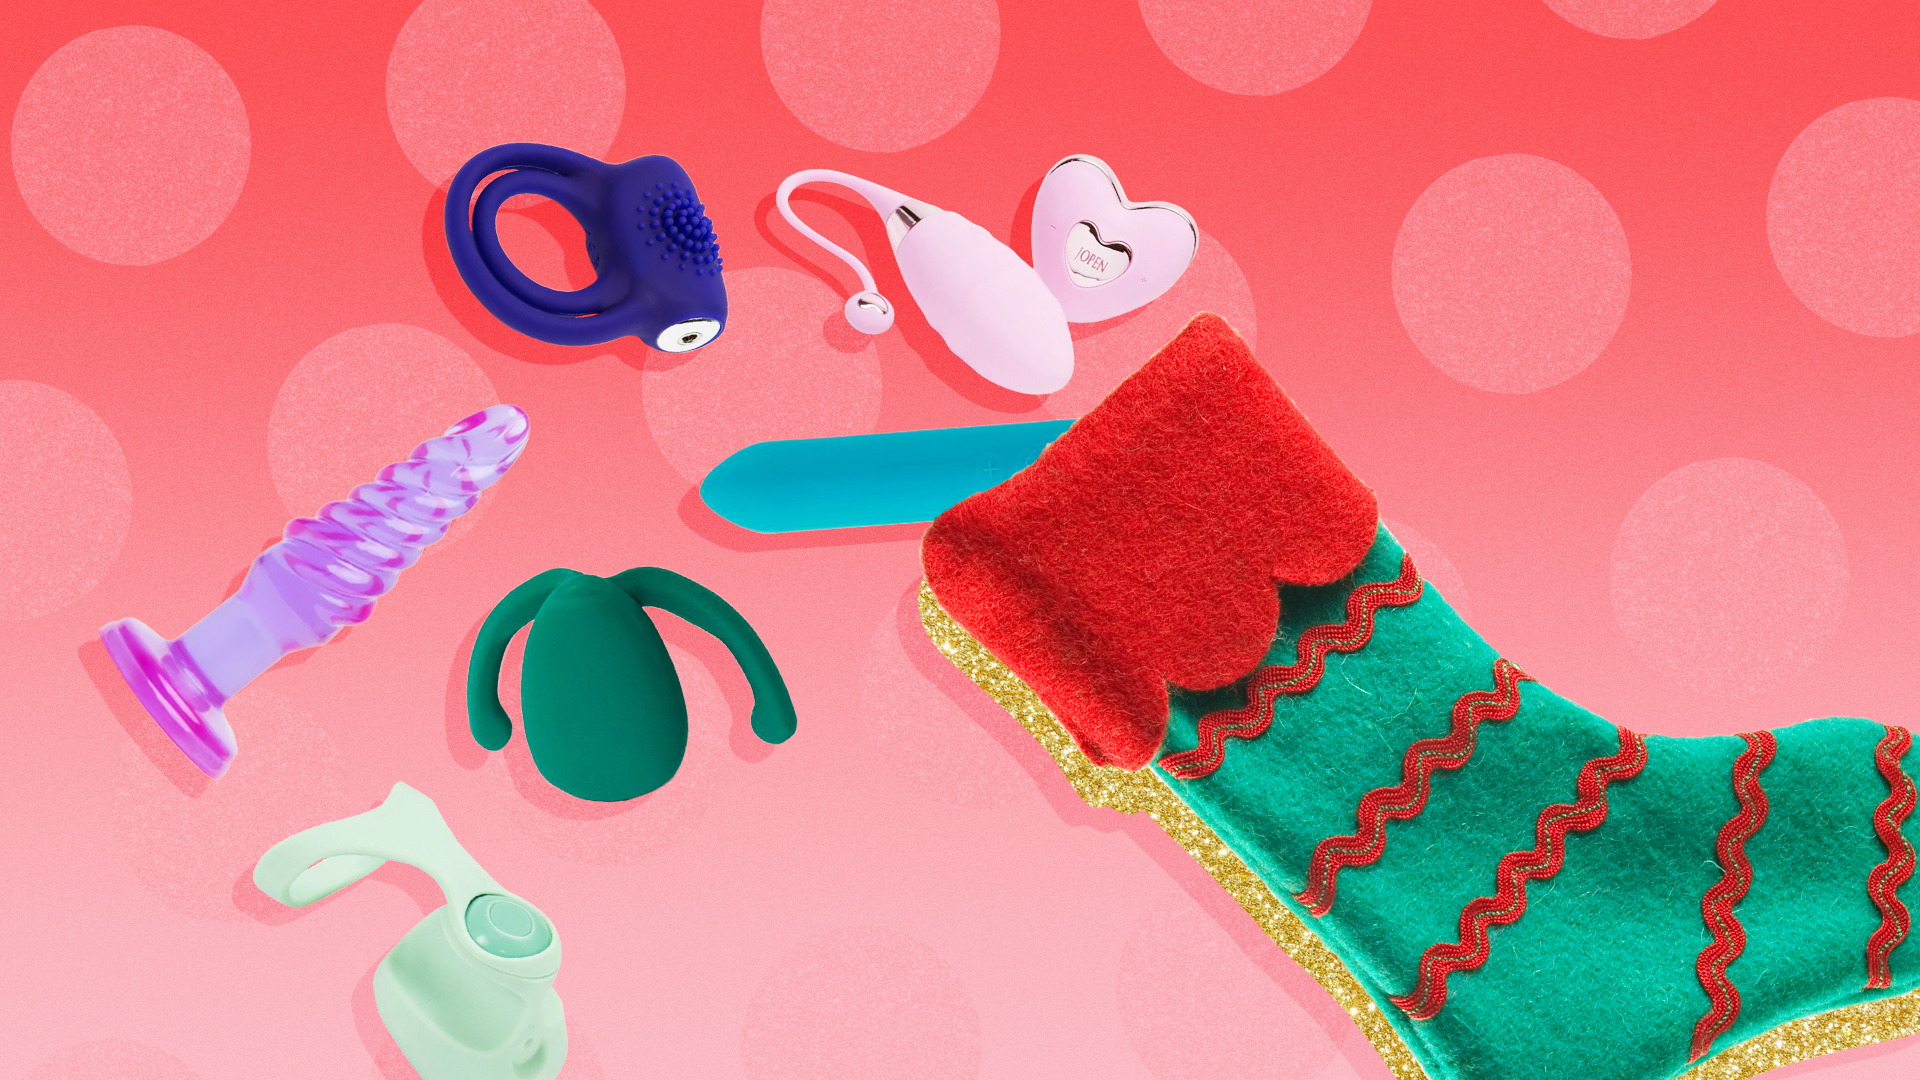 17 Toys Tiny Enough to Fit in Your Stocking – SheKnows